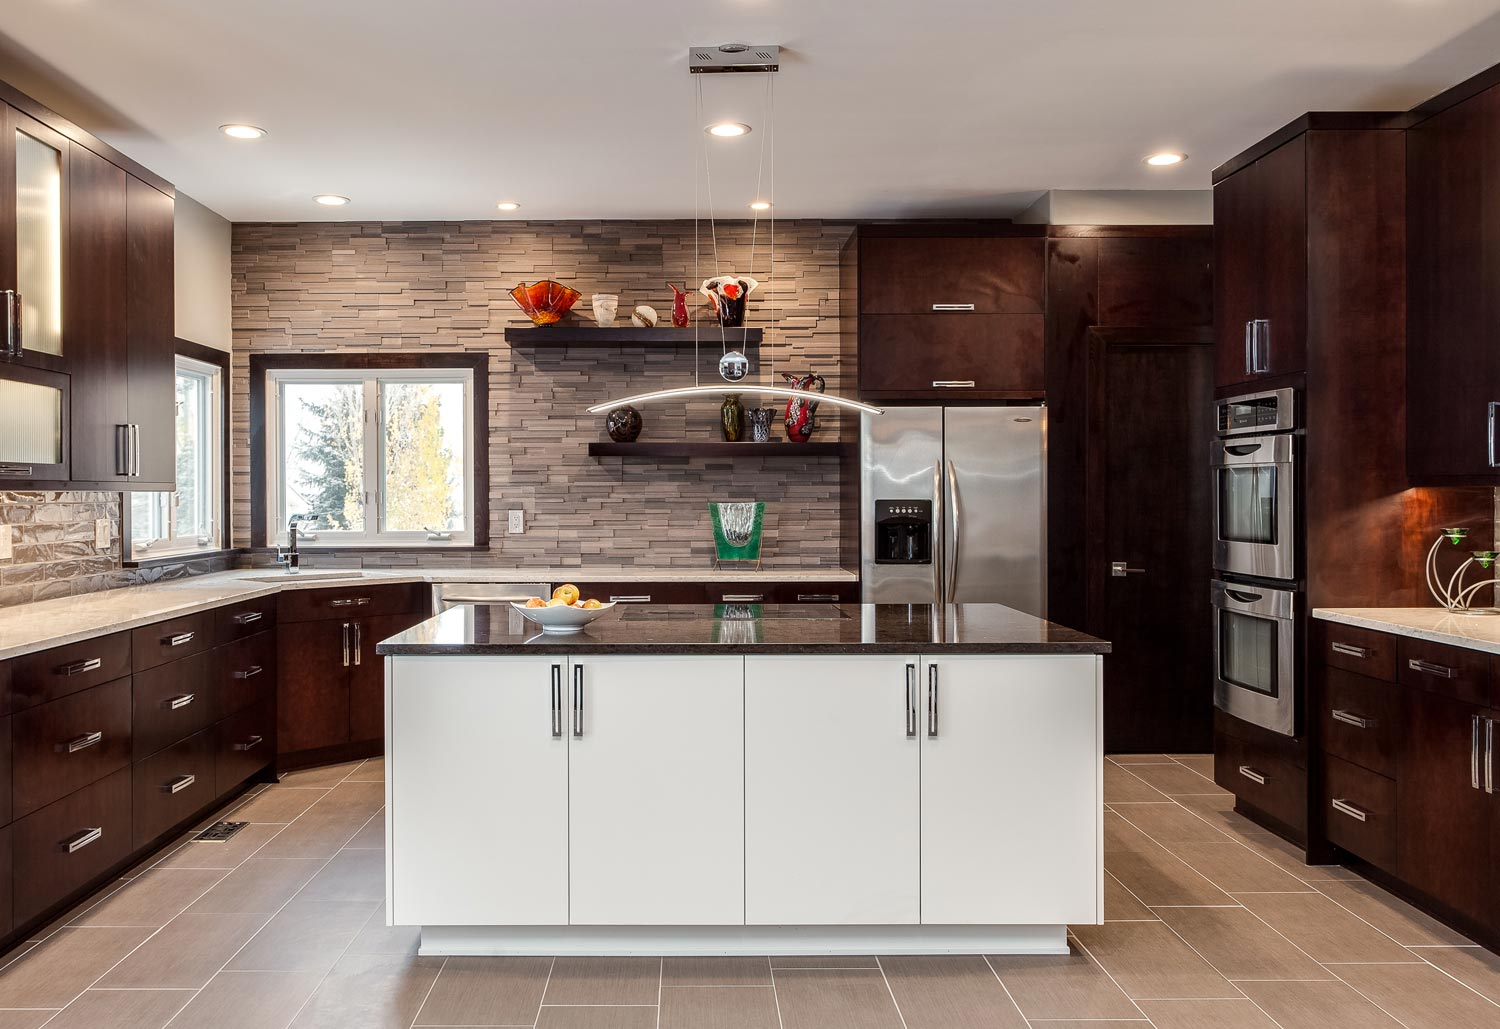 Sleek Contemporary Kitchen Renovation in Lakewood Denver CO